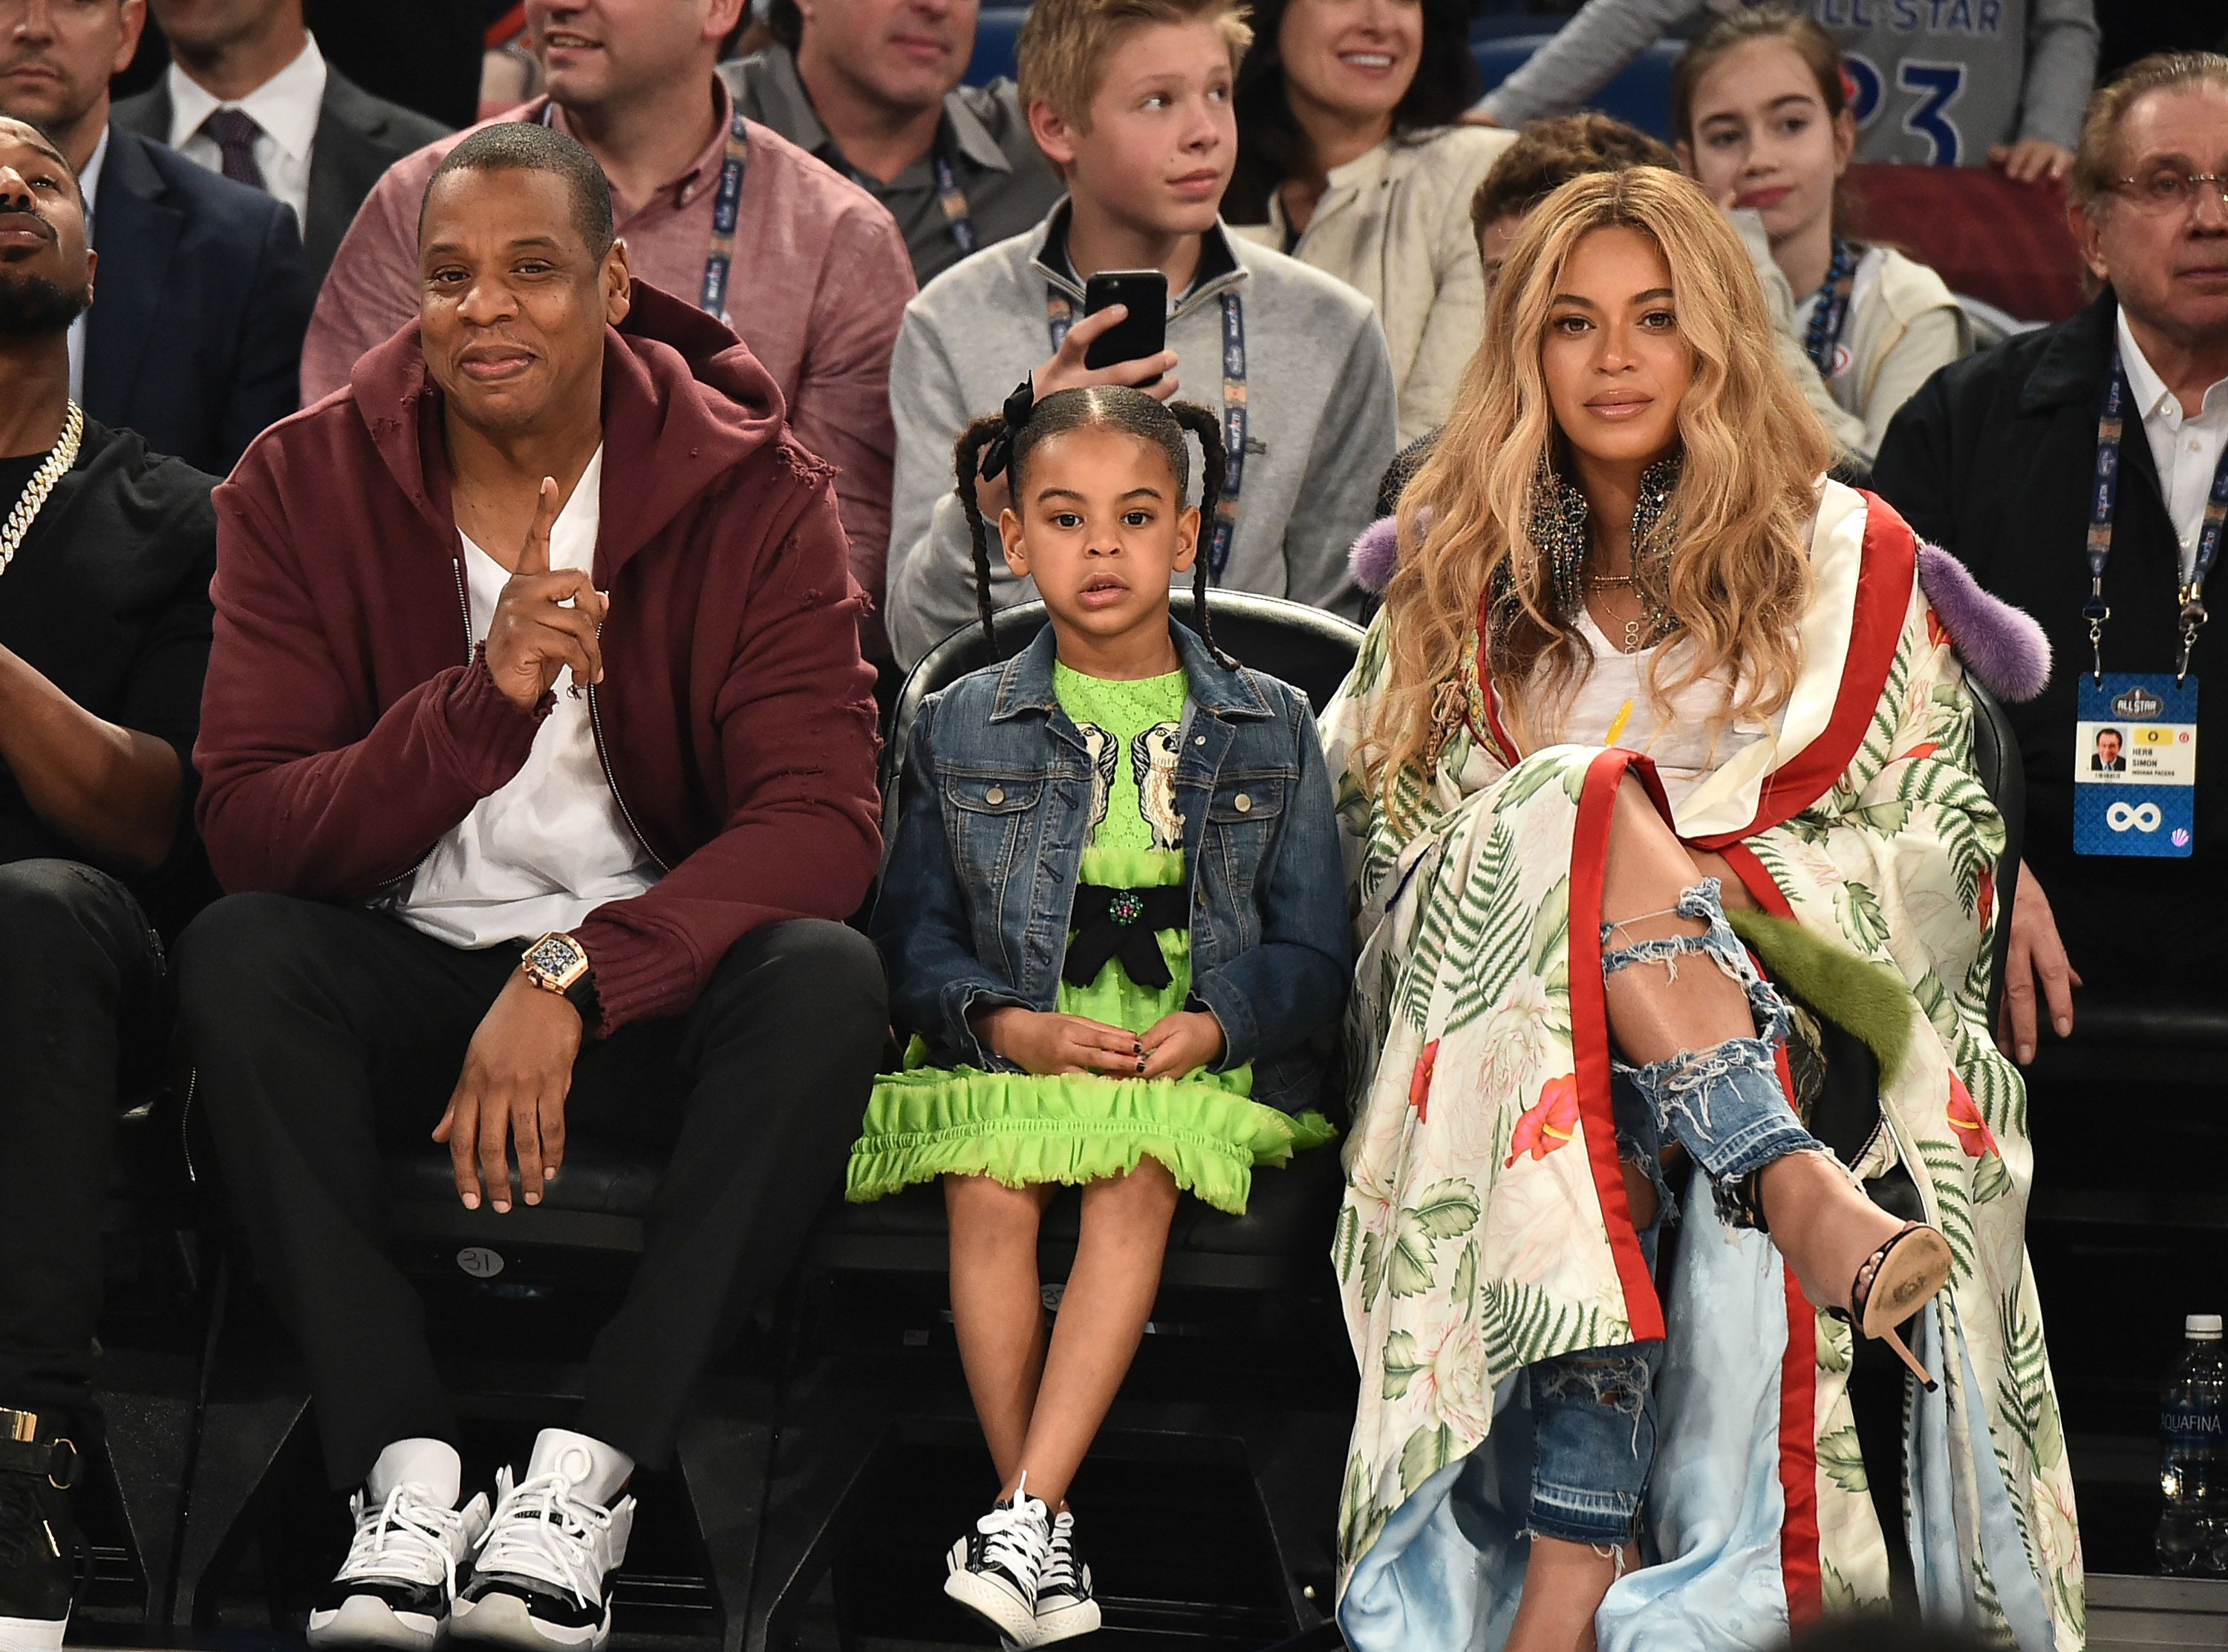 Beyoncé And Her Baby Bump Stole The Show At The All-Star